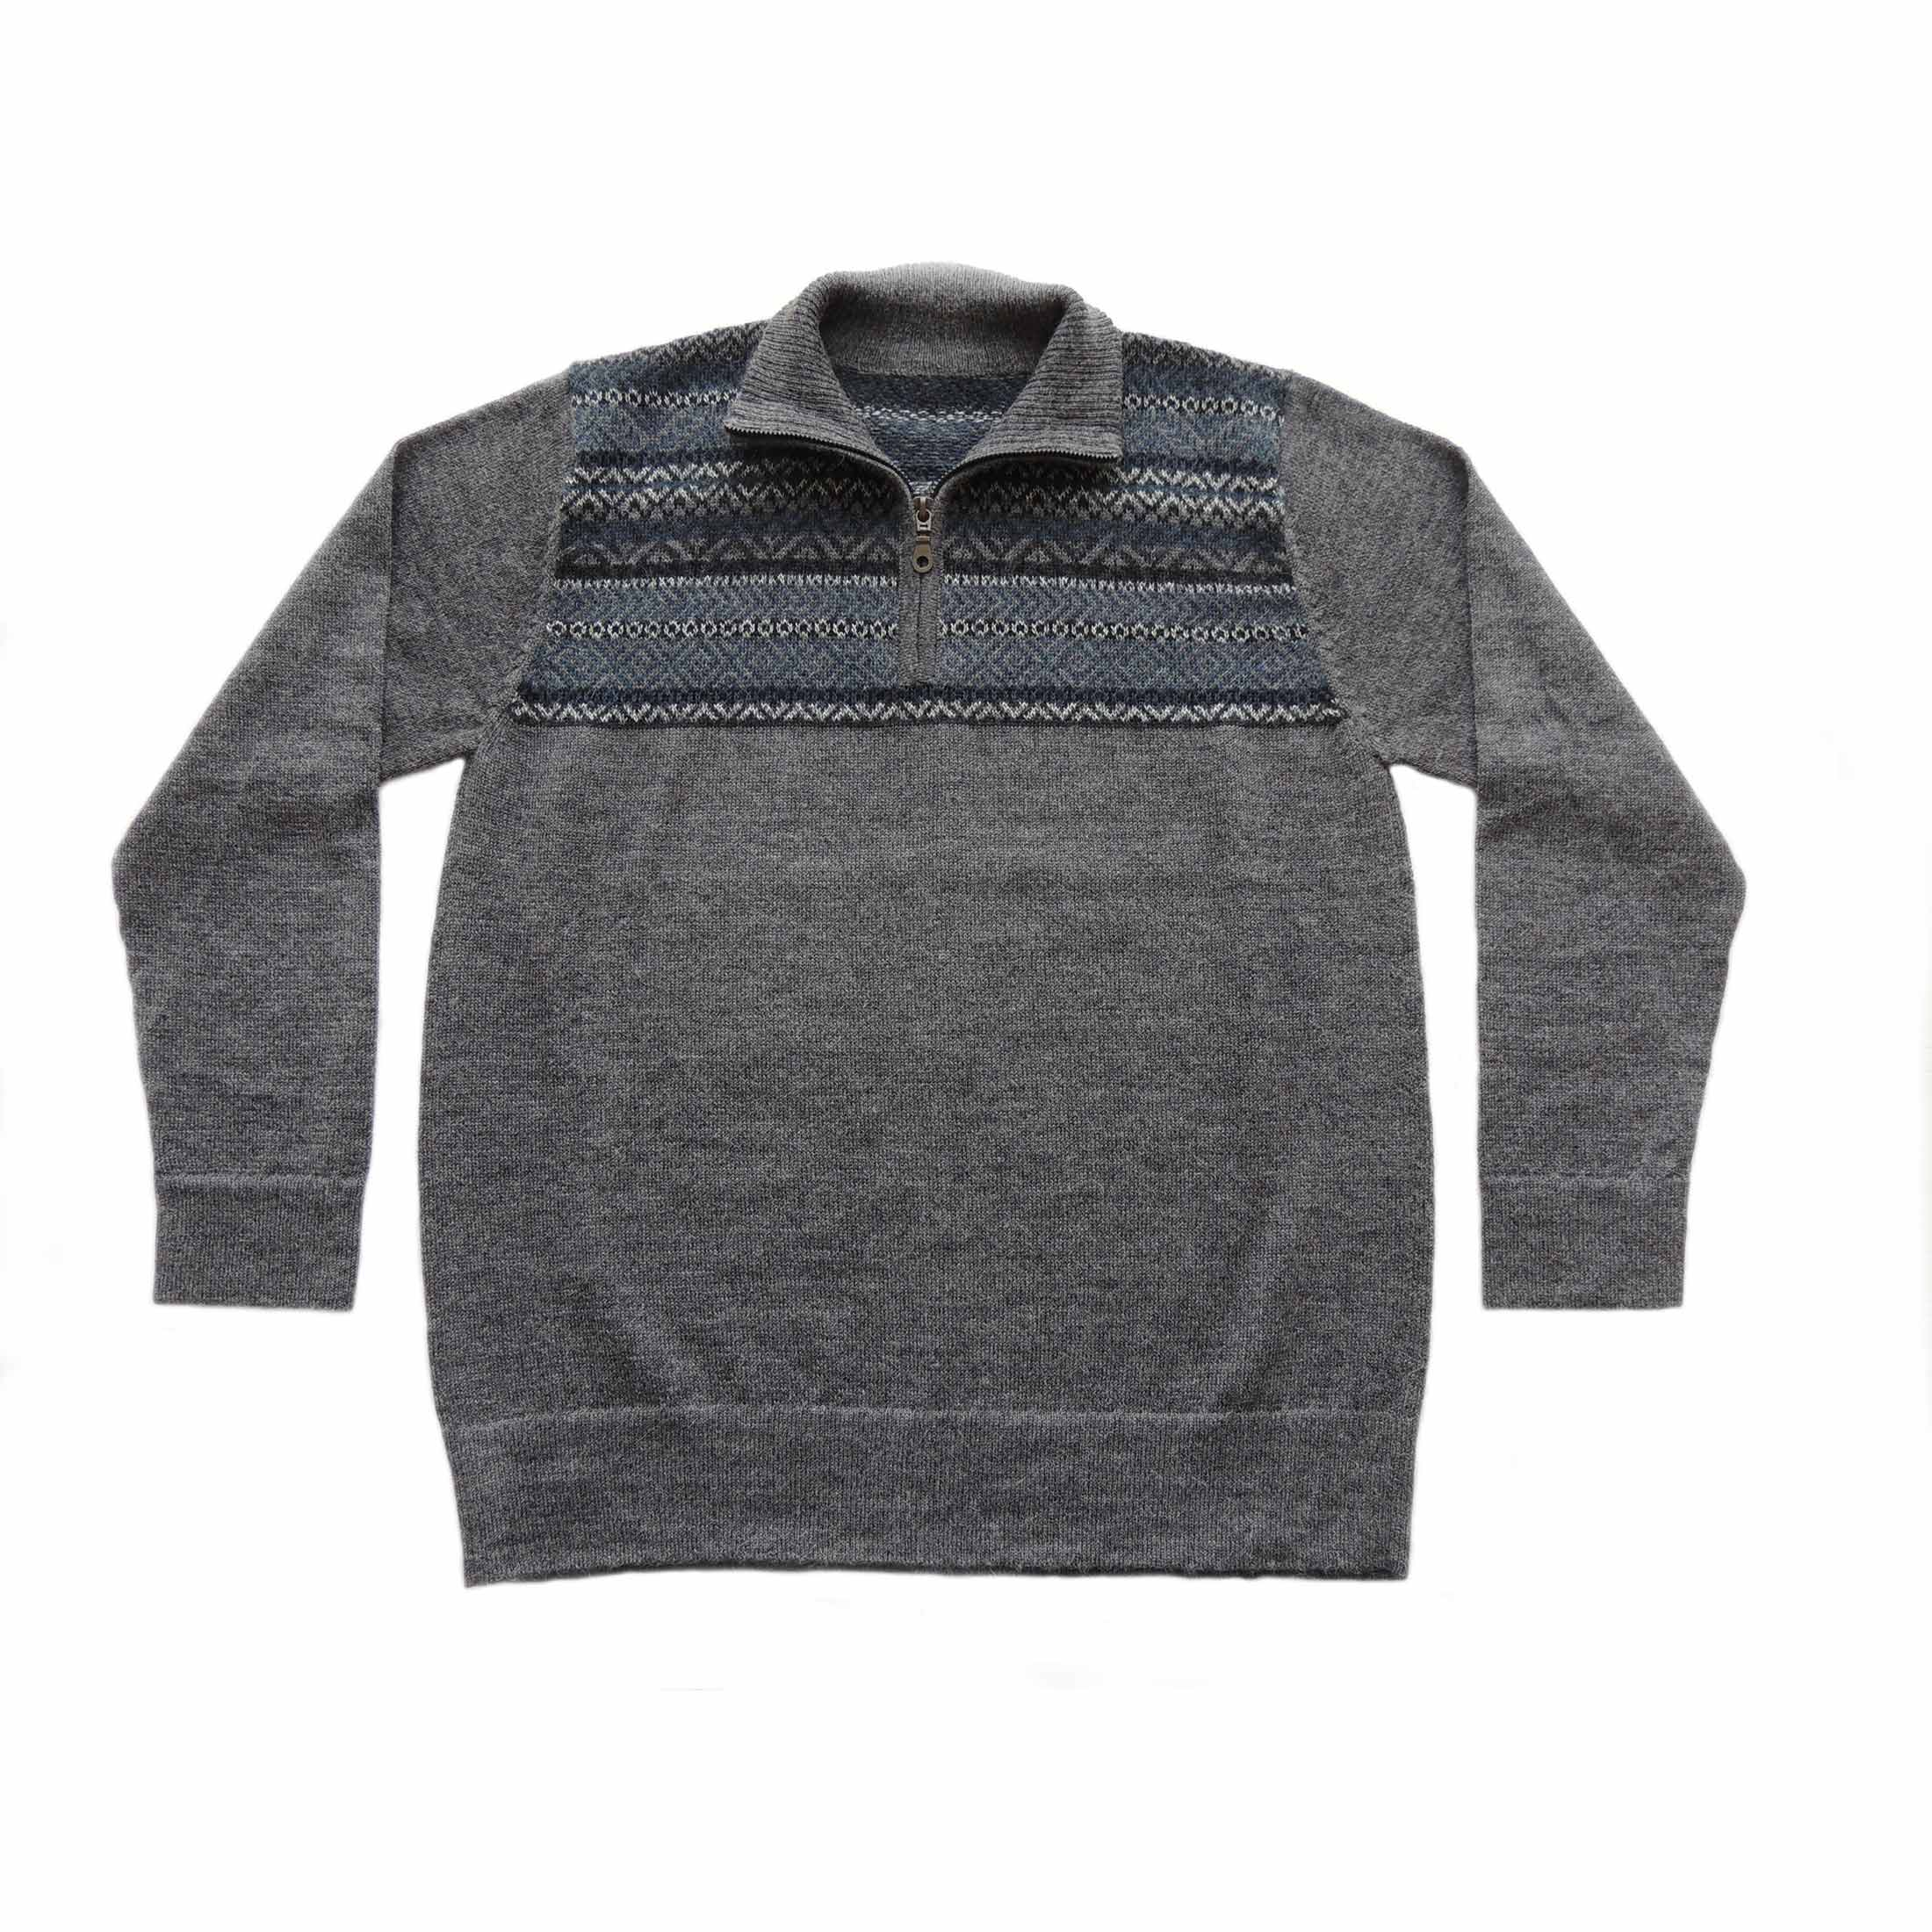 PopsFL Knitwear wholesale Men sweater with quarter zip, high closed neck, solid color with jacquard knitted details, 100% baby alpaca.